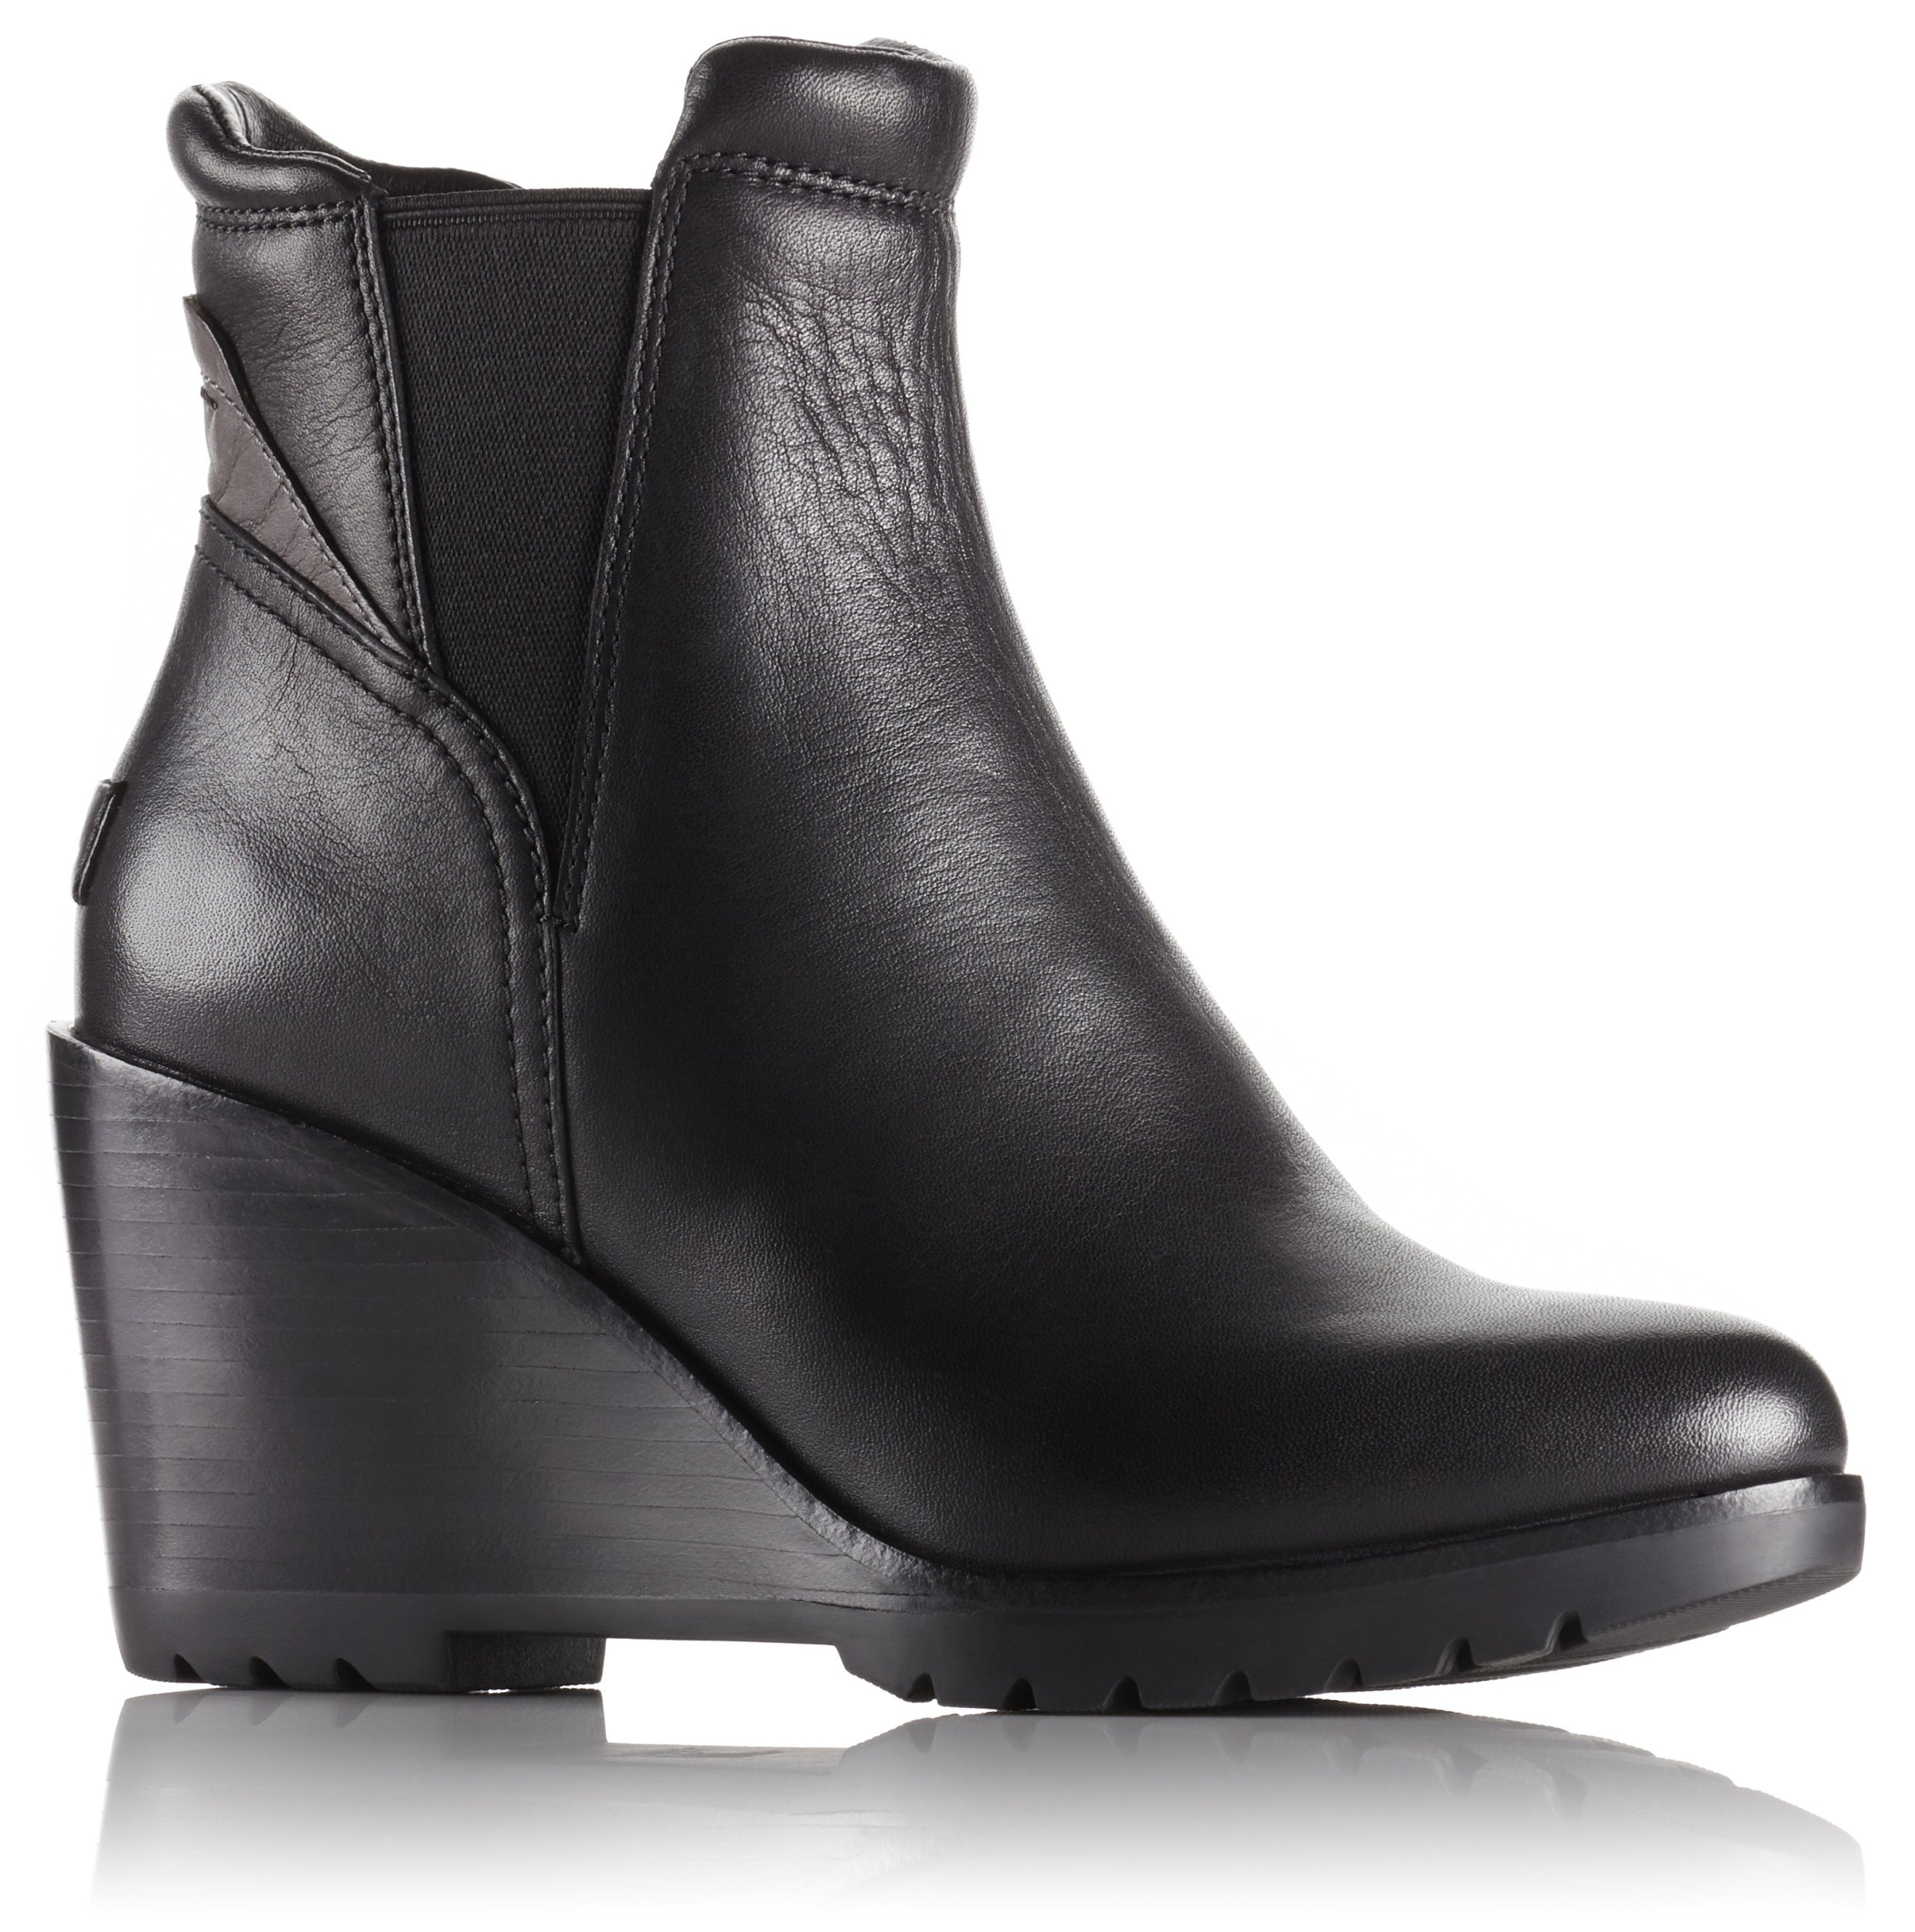 Sorel After Hours Chelsea Suede Boot - Black Leather - Womens - 8